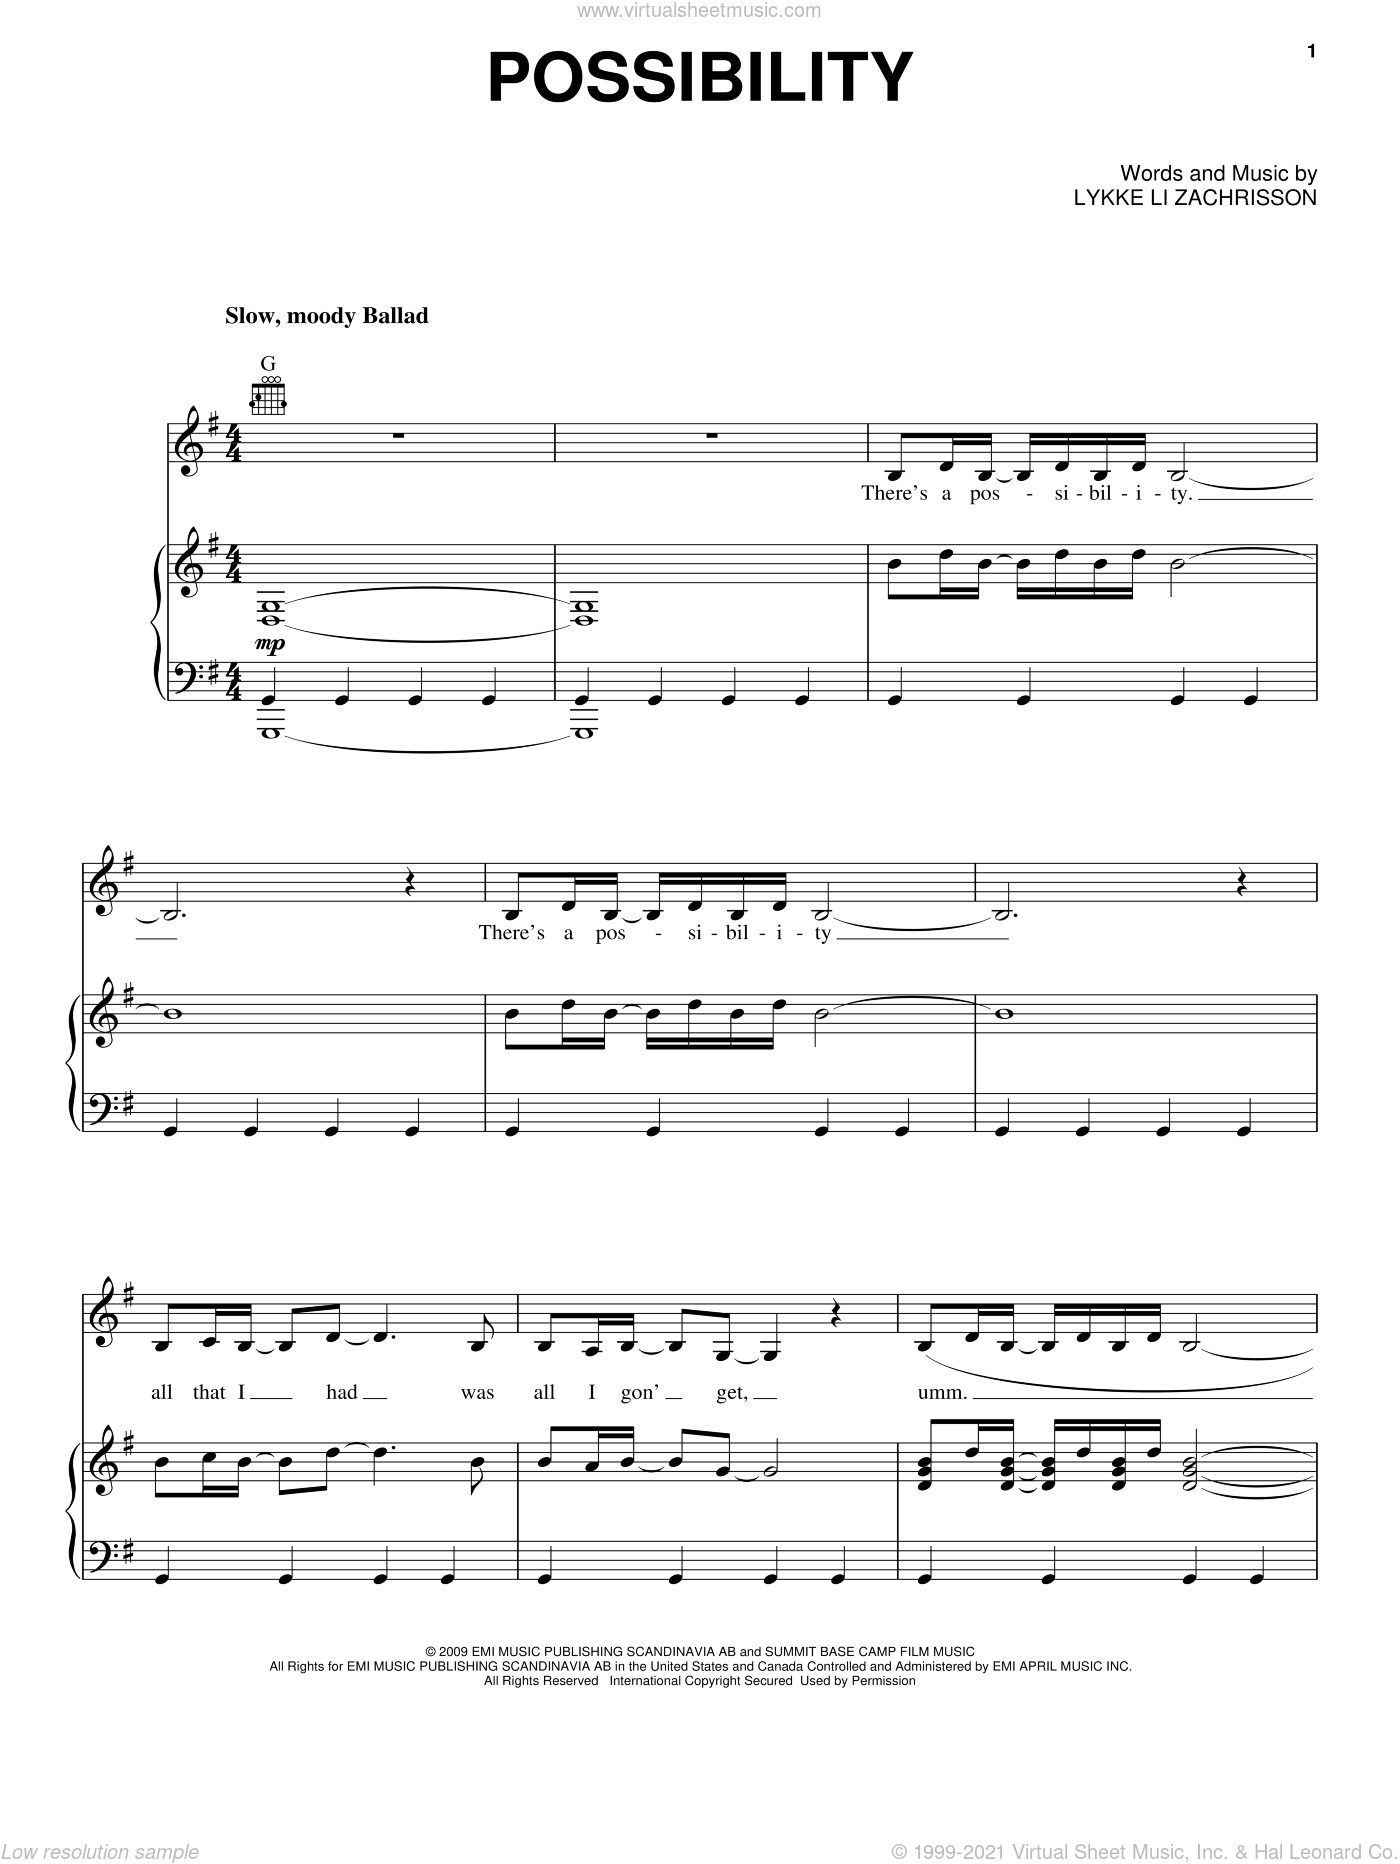 Possibility sheet music for voice, piano or guitar by Lykke Li Zachrisson. Score Image Preview.